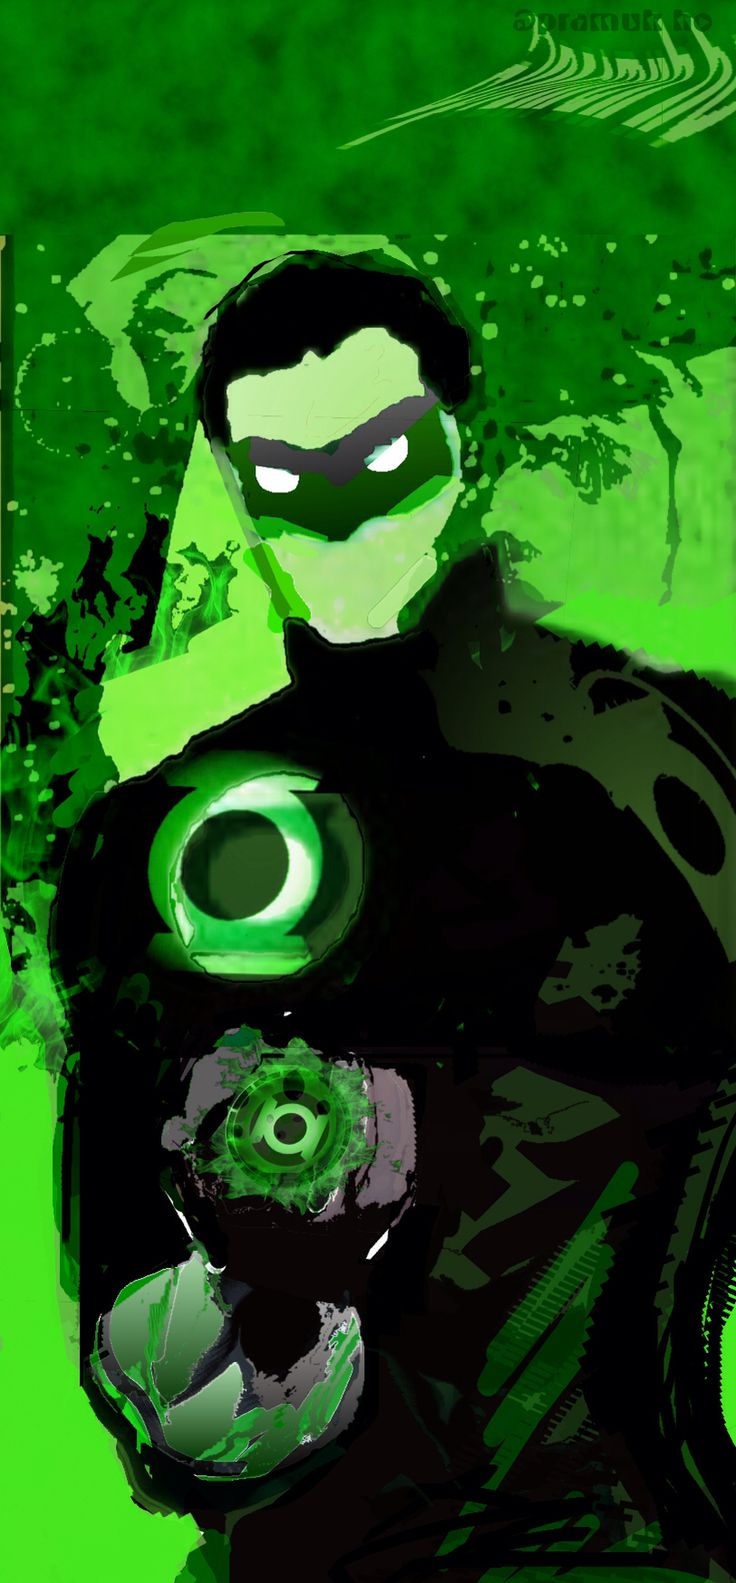 The Power Ring () derived from Power Ring in Green Lantern #1 Rebirth (2016)